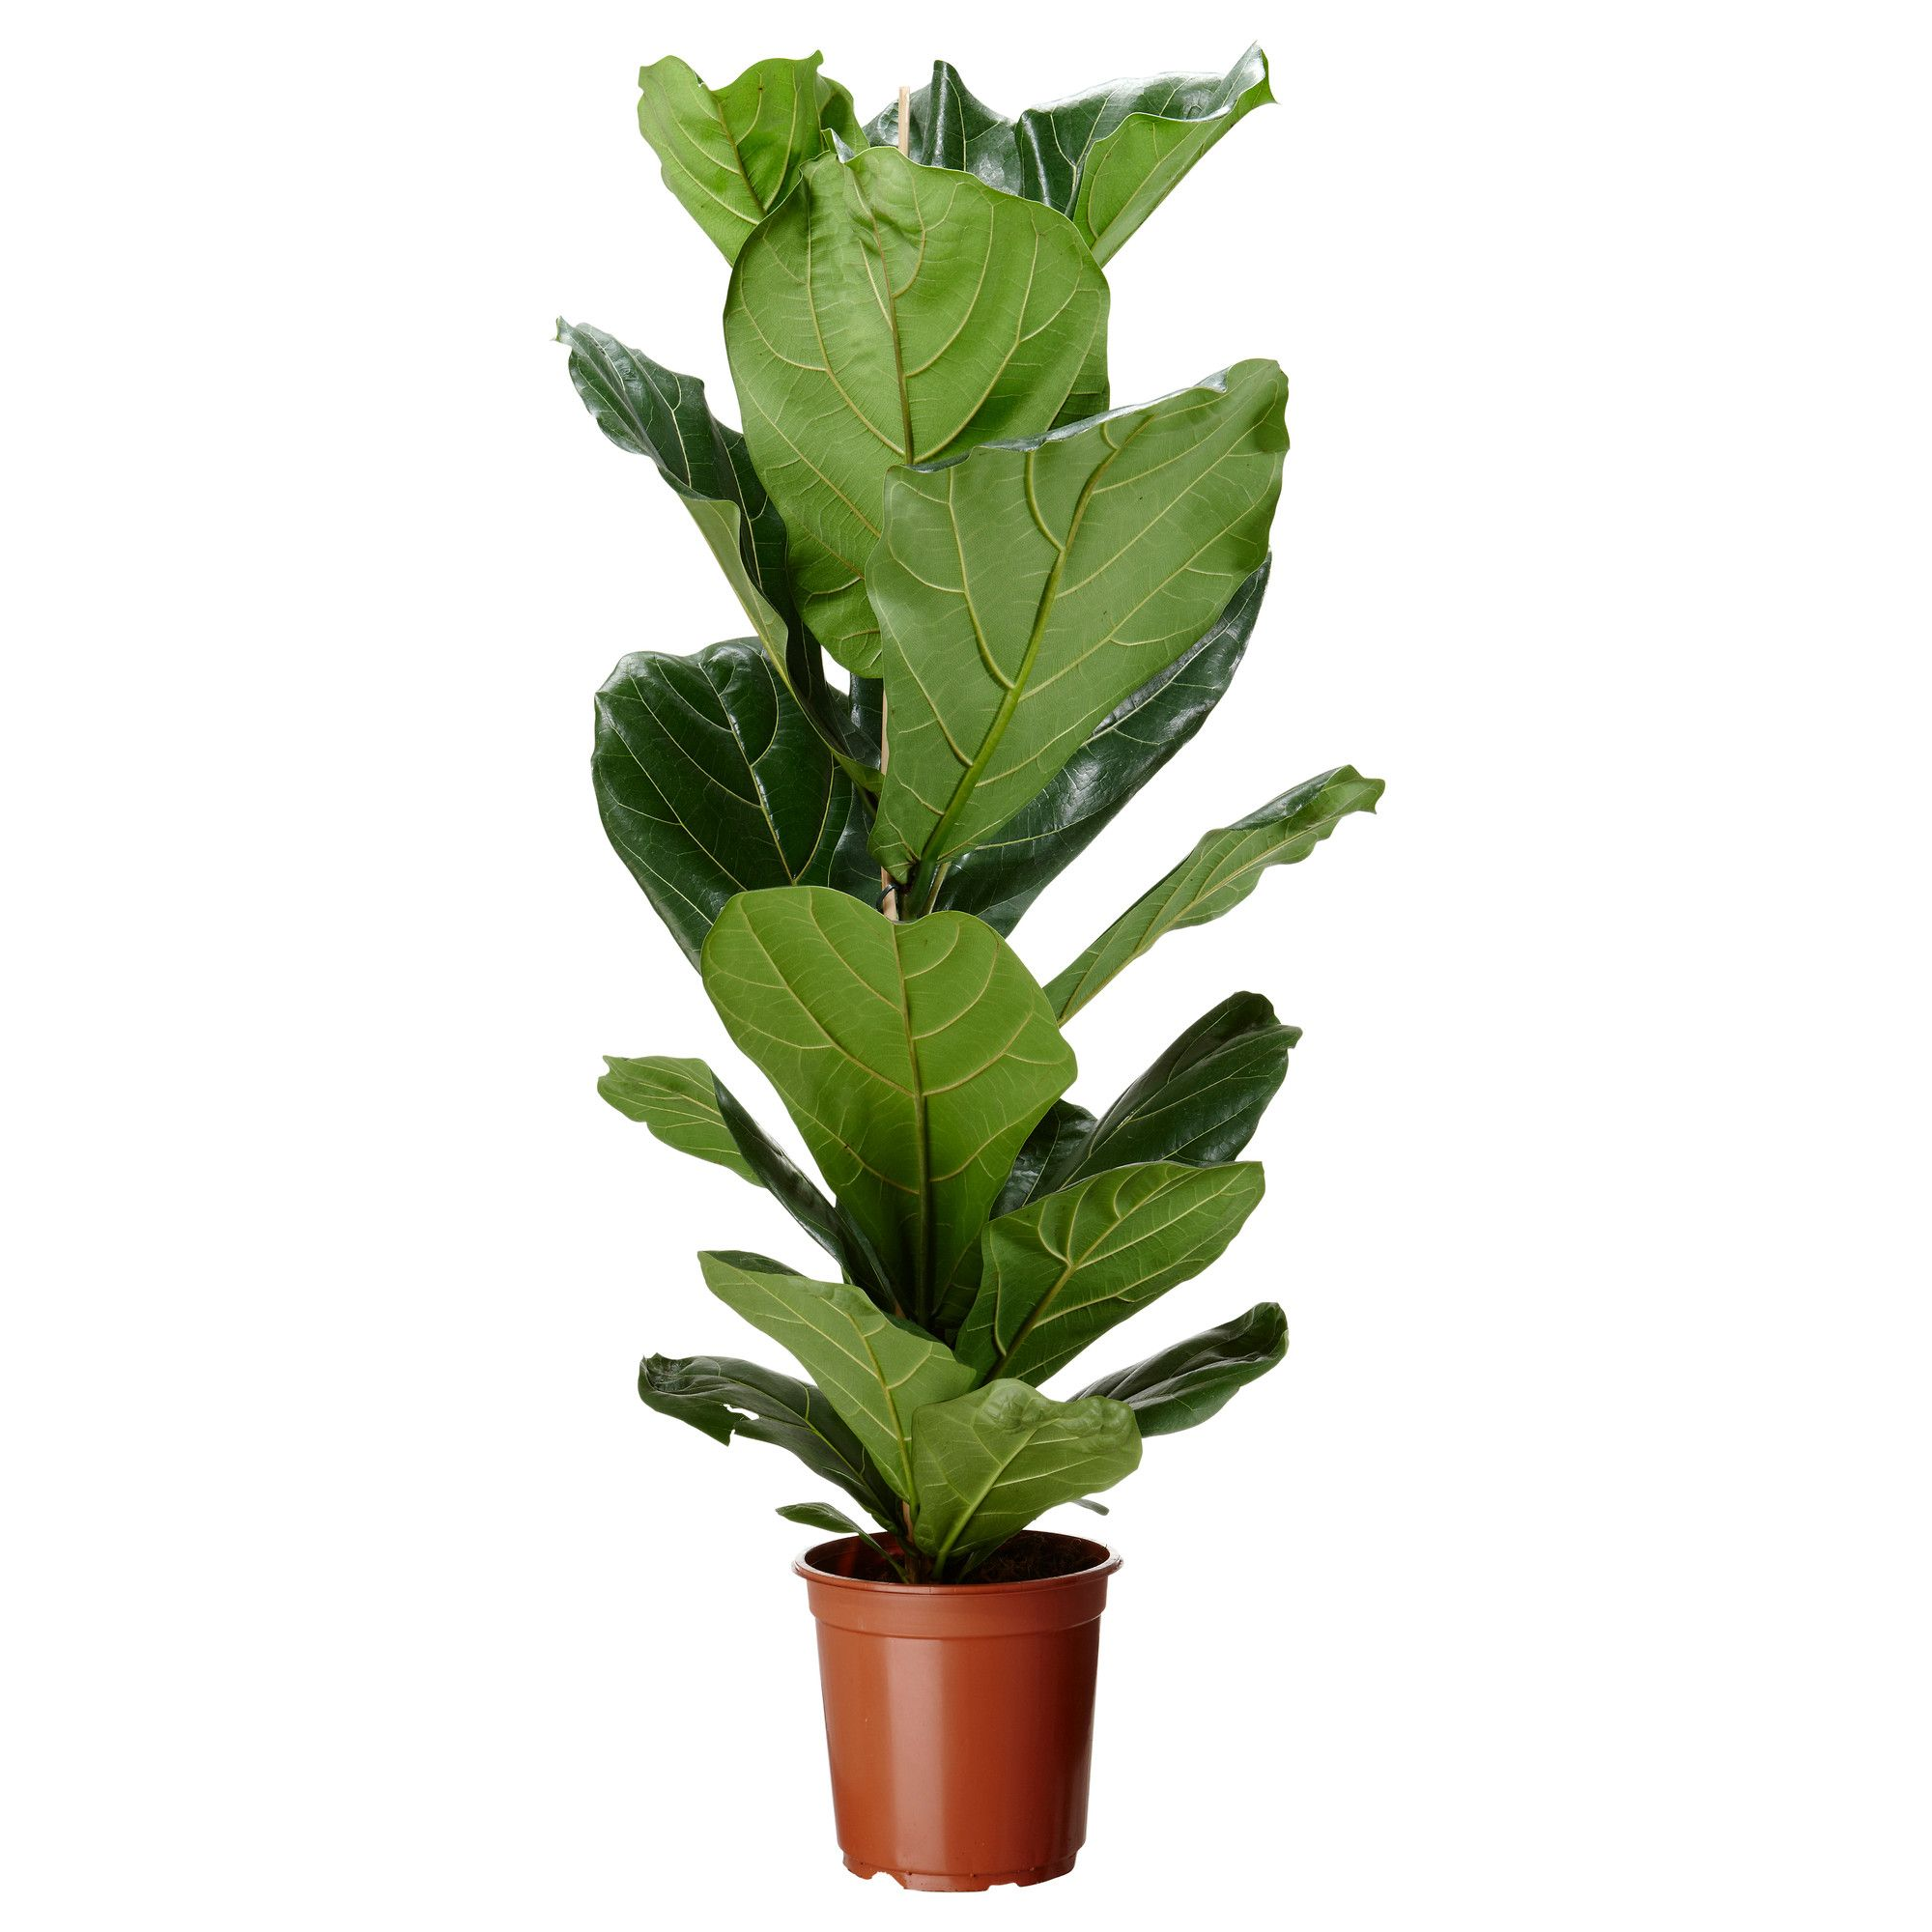 ficus lyrata plante en pot ikea 15 salon sud ficus. Black Bedroom Furniture Sets. Home Design Ideas